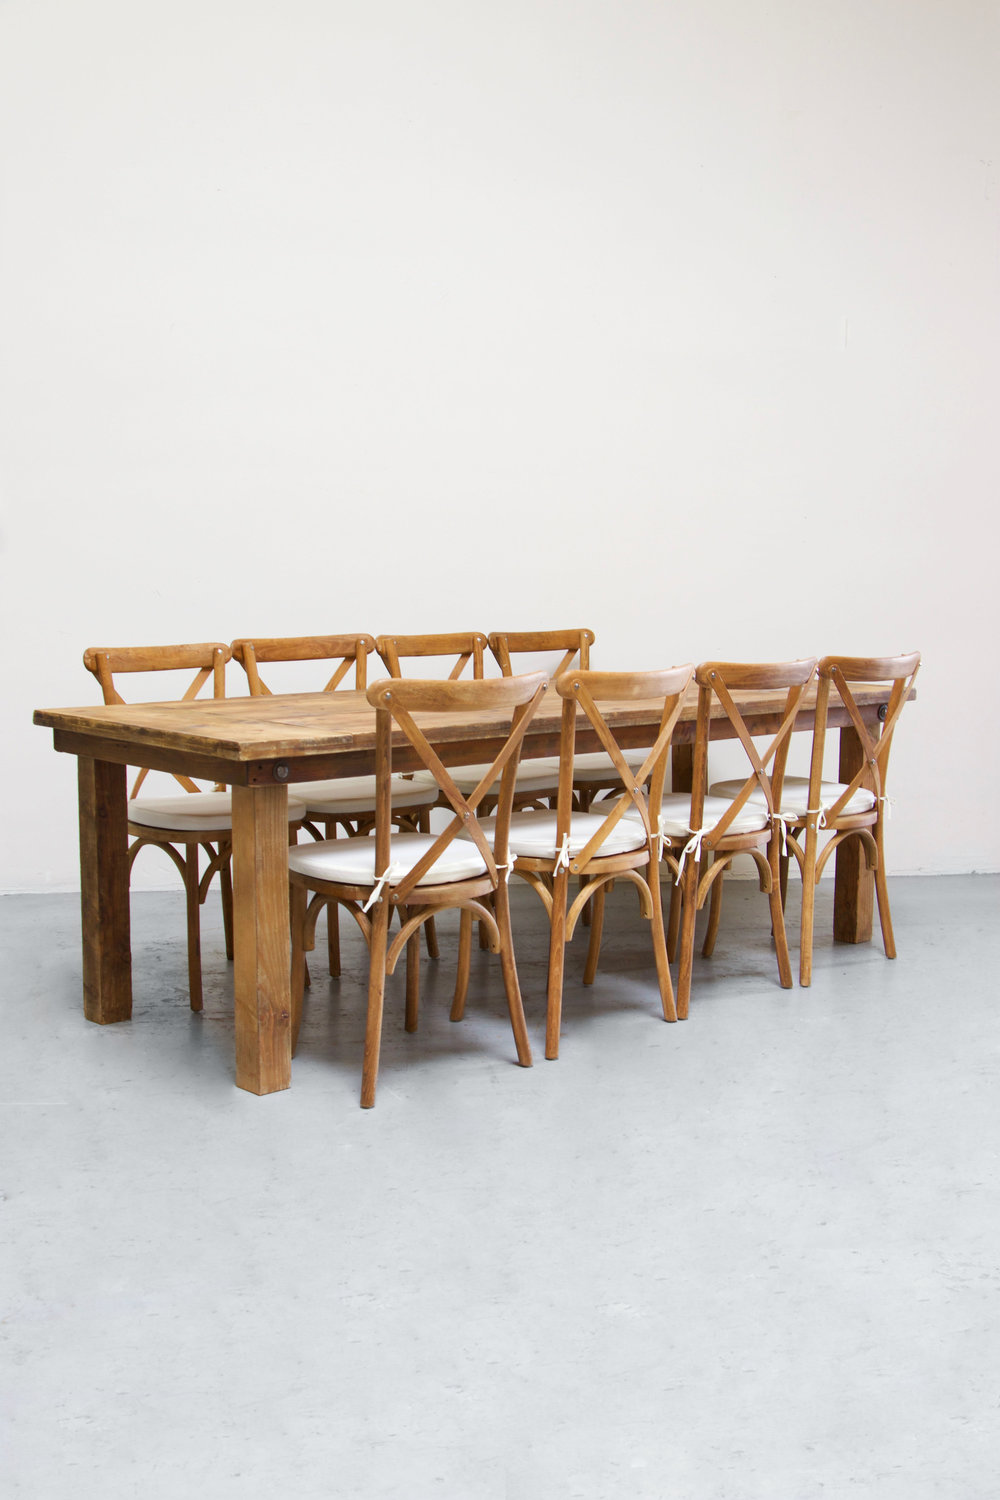 1 Honey Brown Farm Table w/ 8 Cross-Back Chairs $145